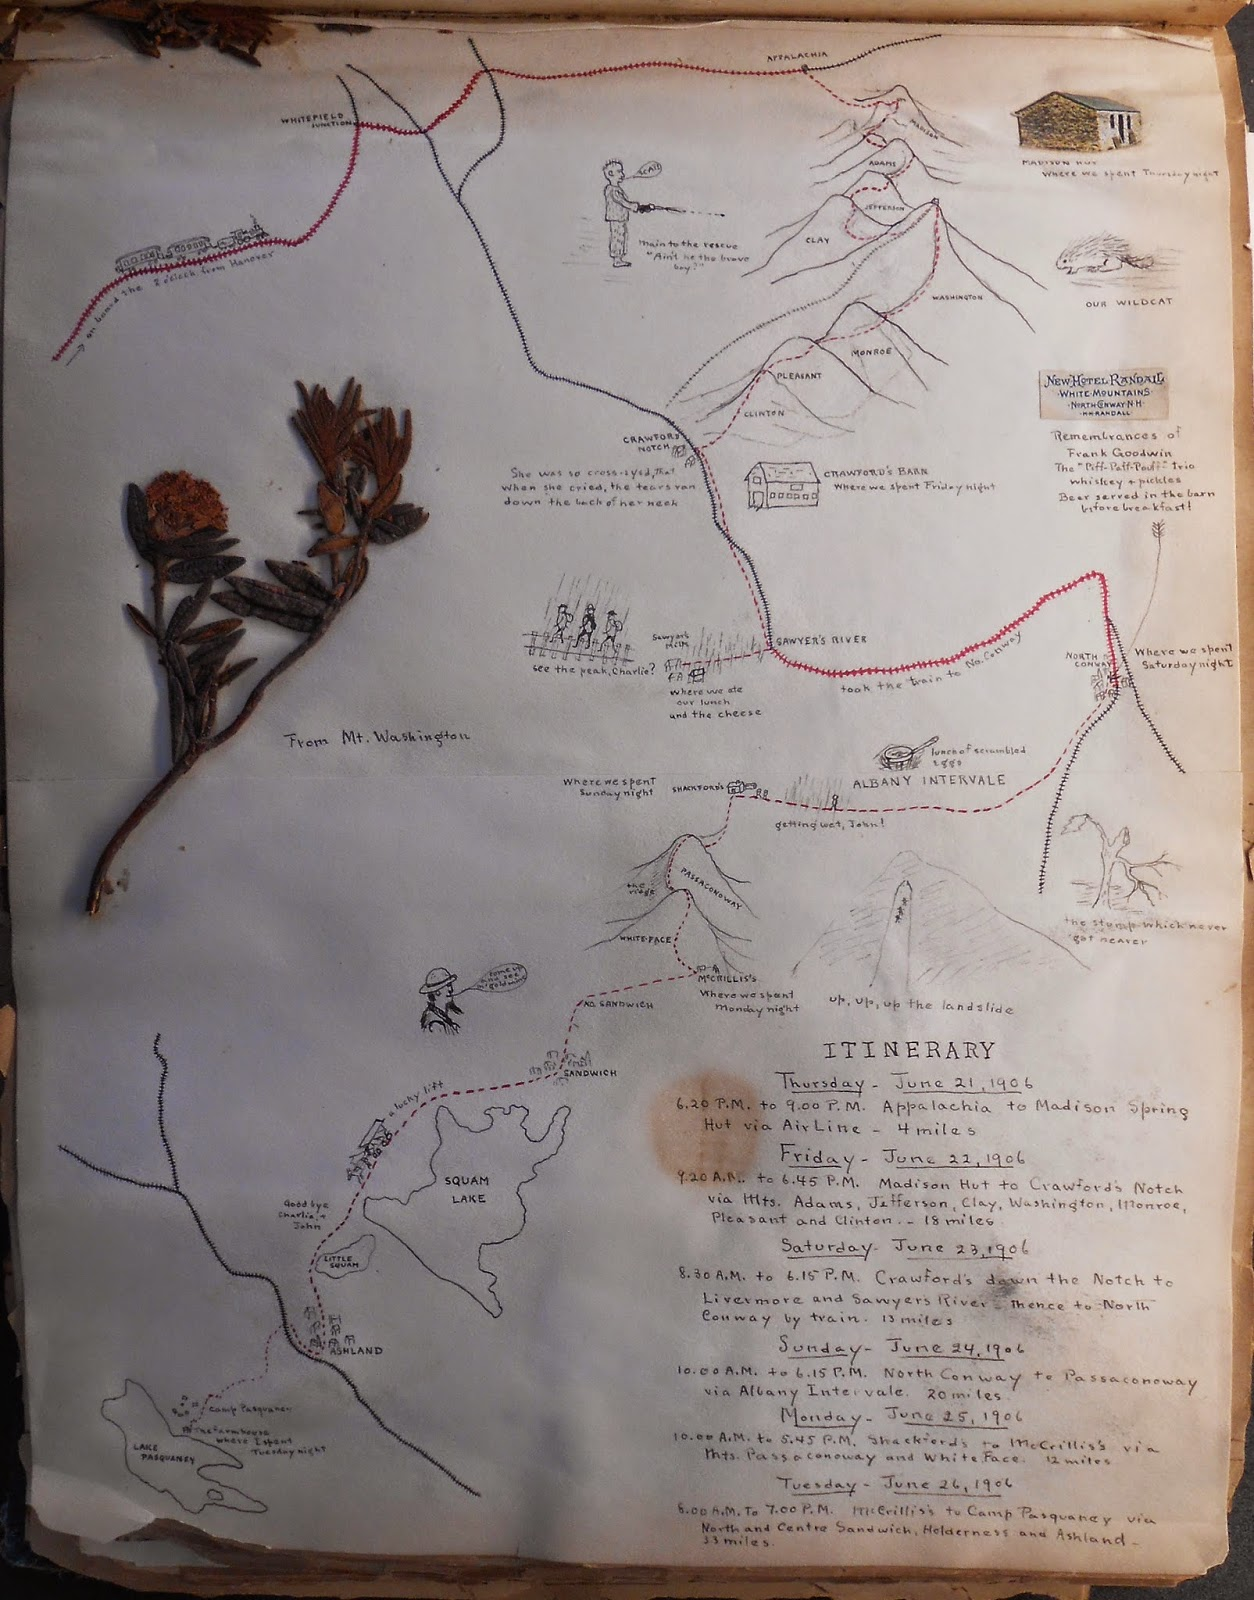 A hand-drawn map and itinerary, as well as a dried and pressed stem of flowers.